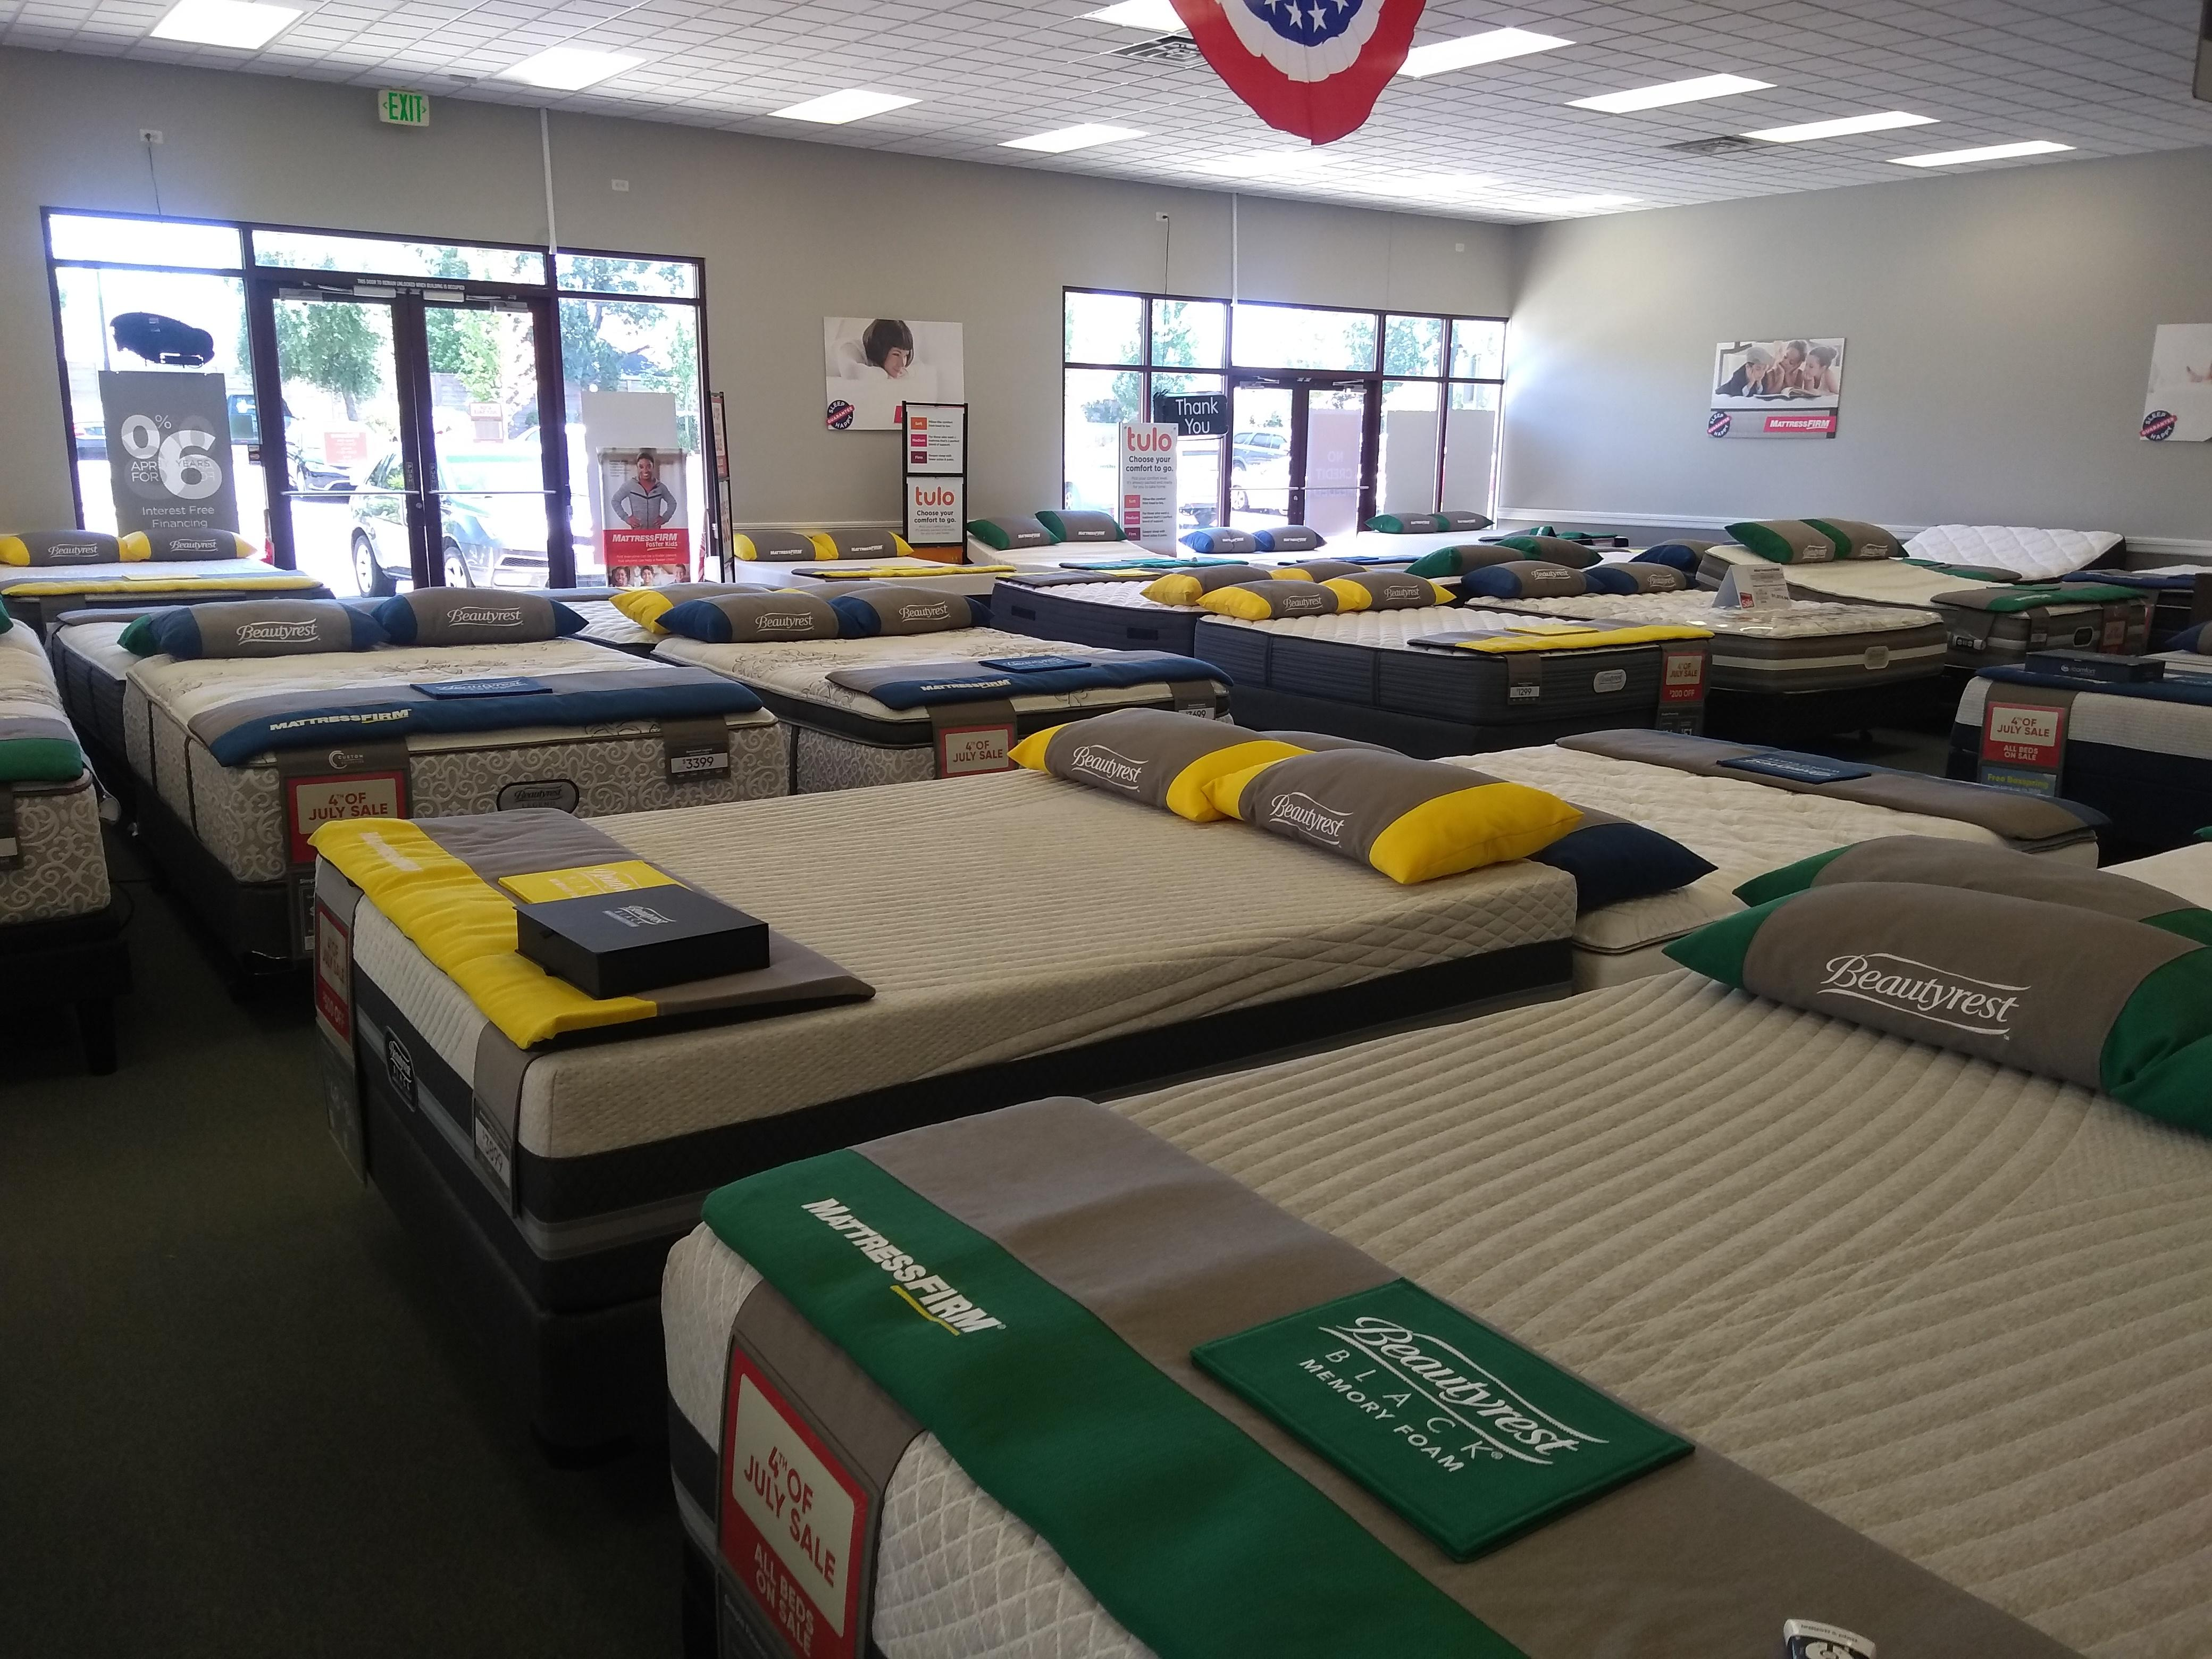 Mattress Firm Chico Forest Ave image 4